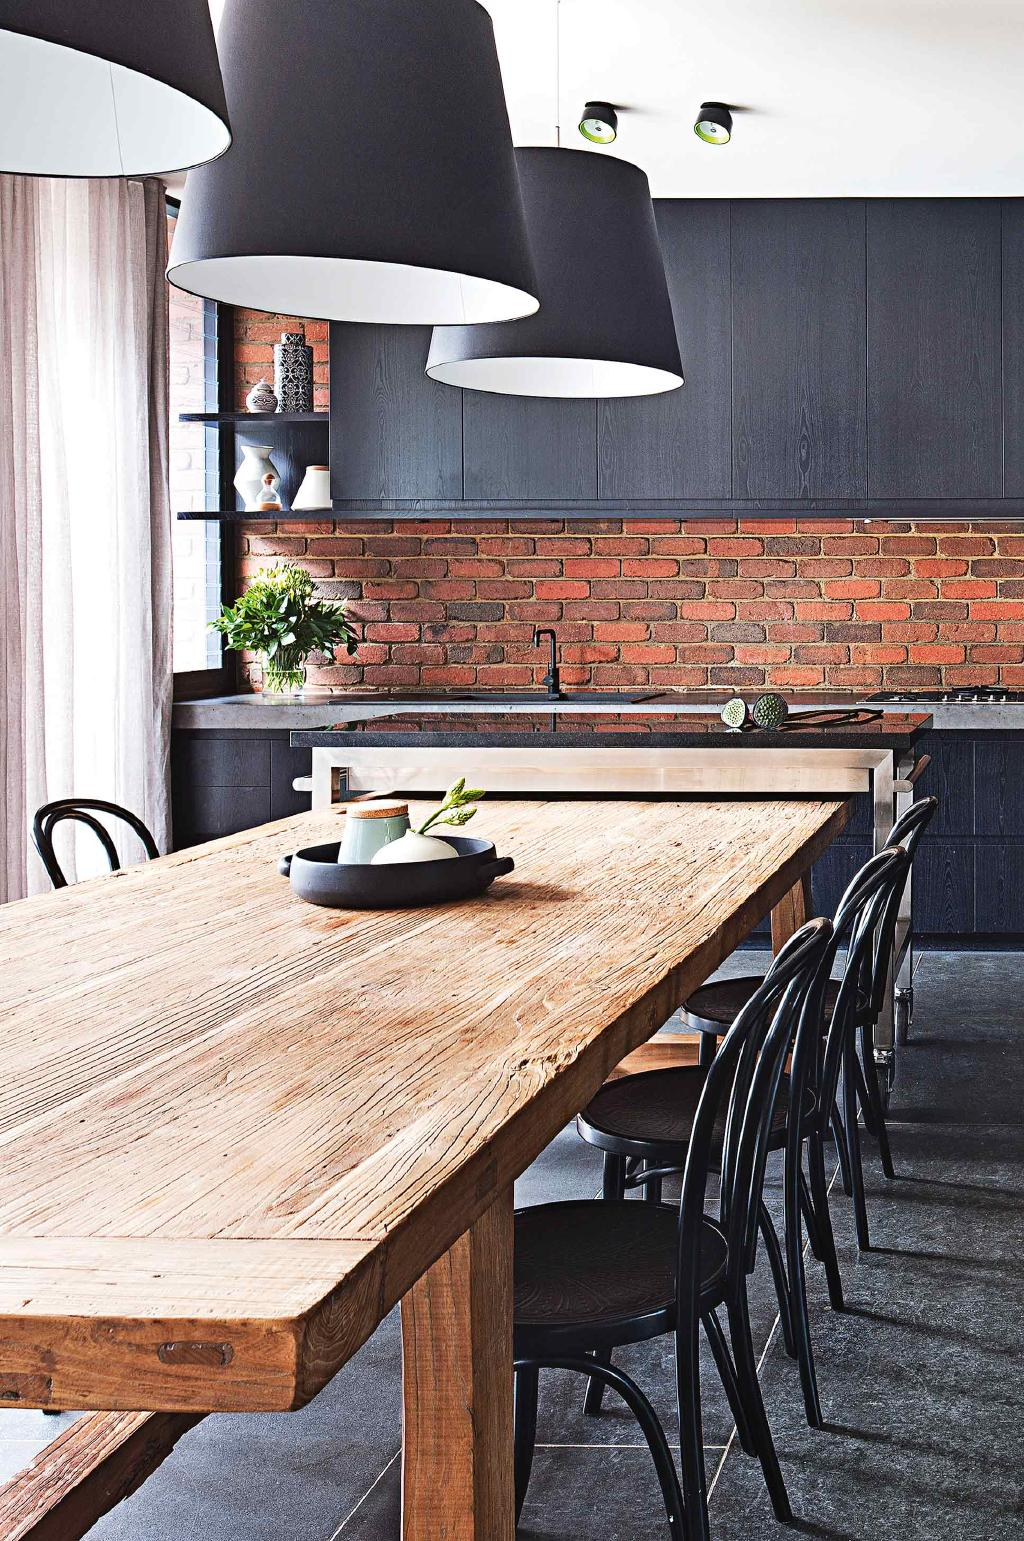 Exposed brick splashback